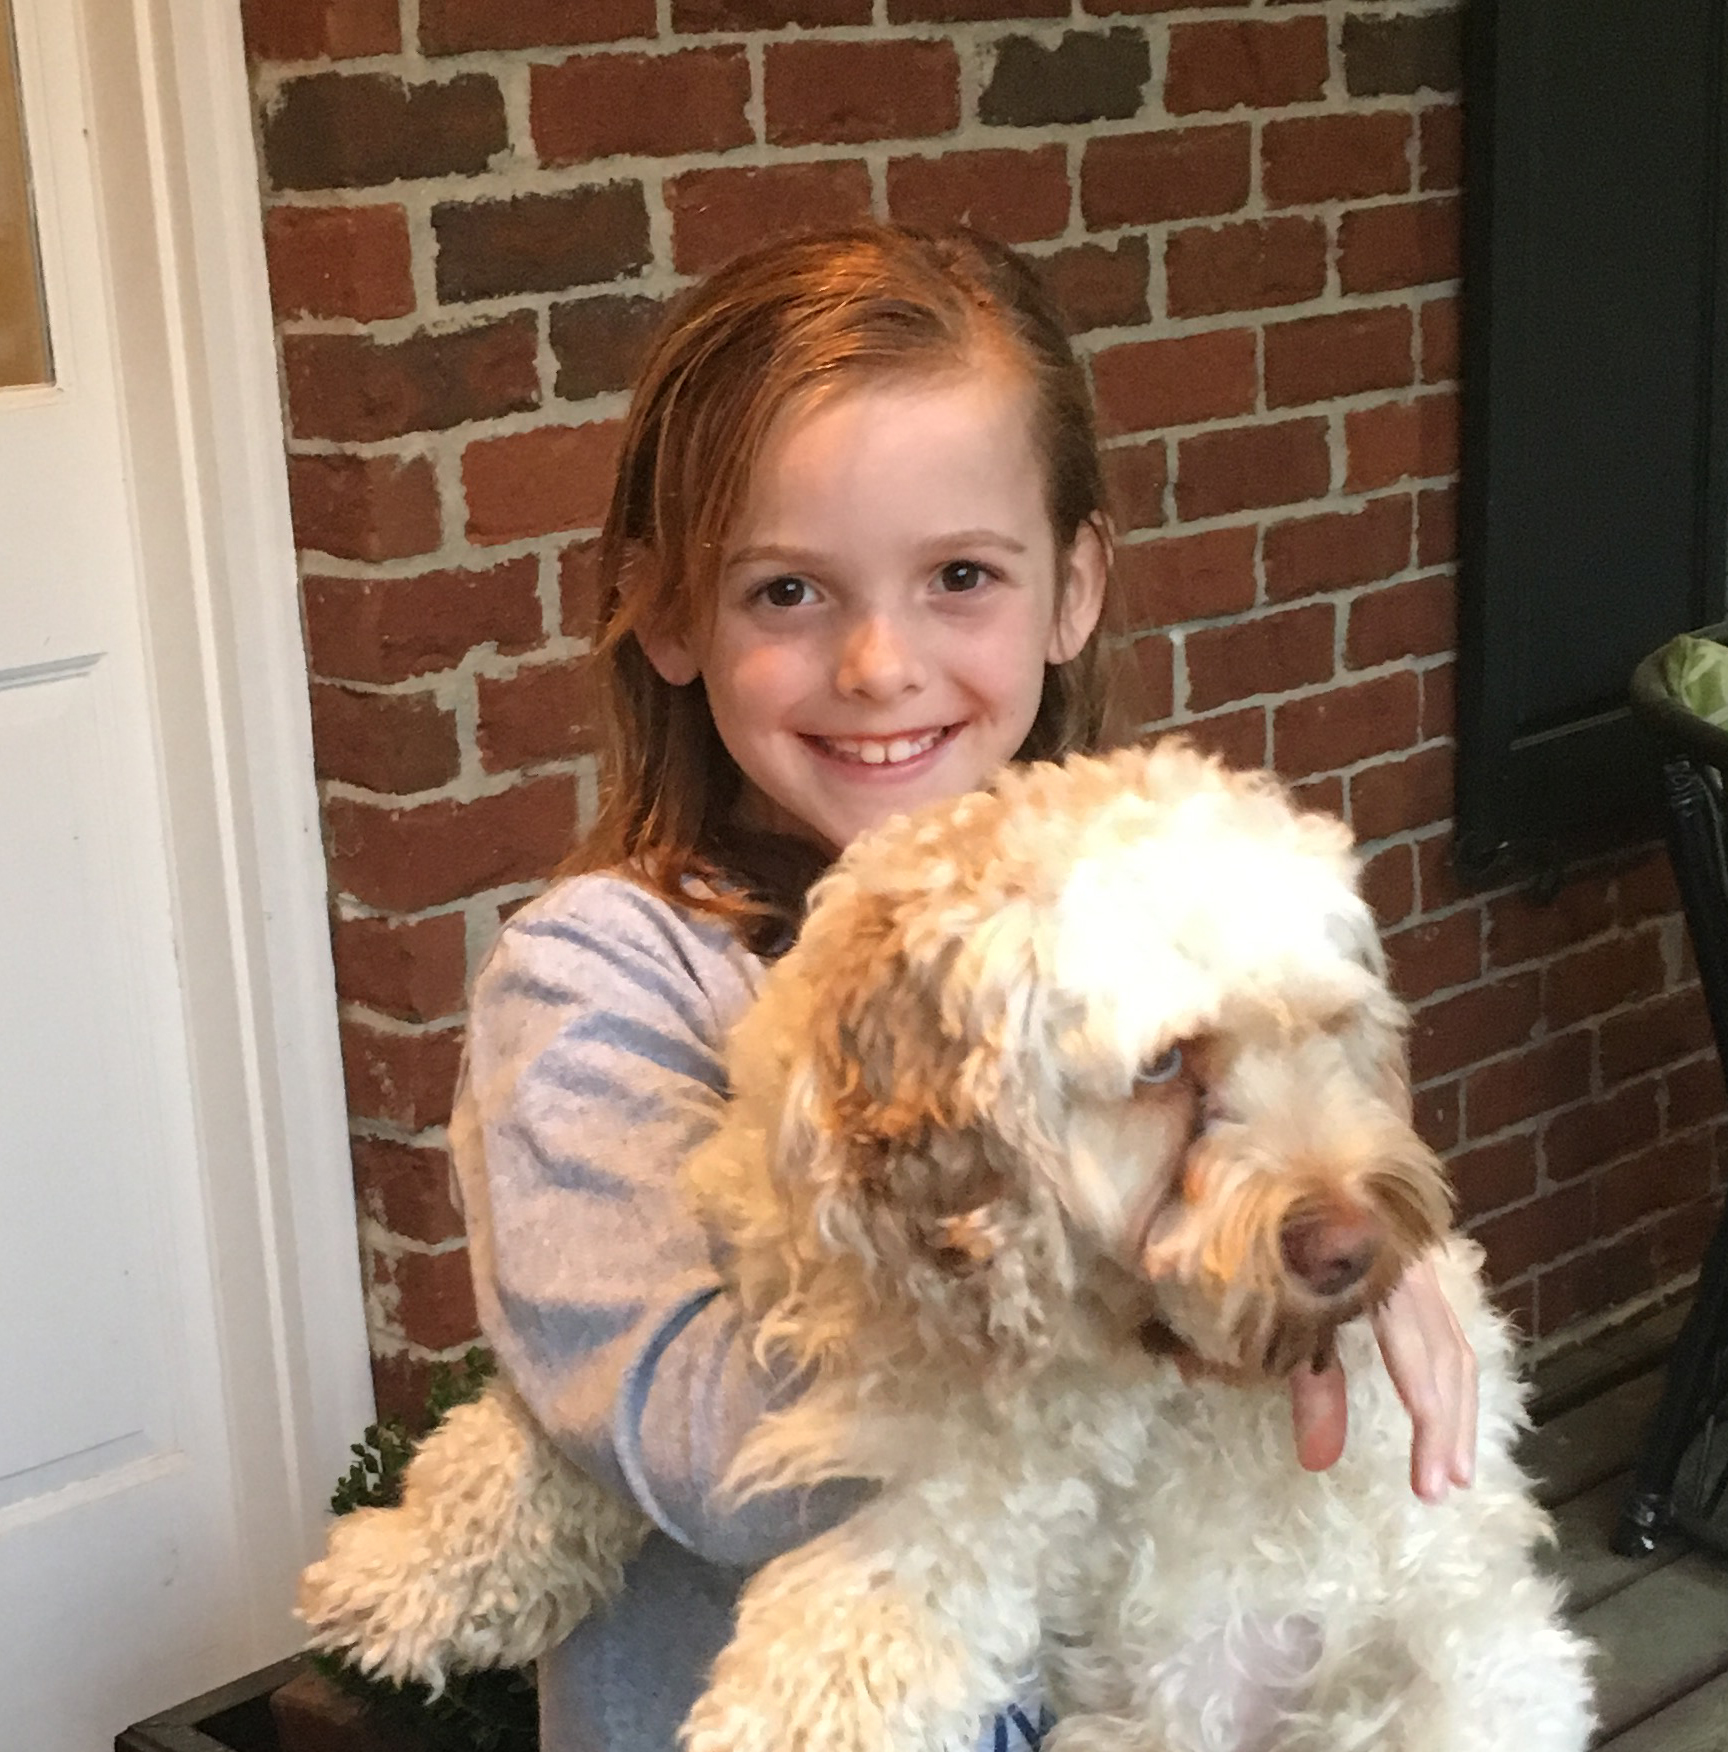 We spend about 75 percent of our lives looking at the world through technology. It's important that we take the time to see the world just as it is! I'd rather be reading, outside playing soccer or just having fun with my friends and my dog!  Braelyn Age 7